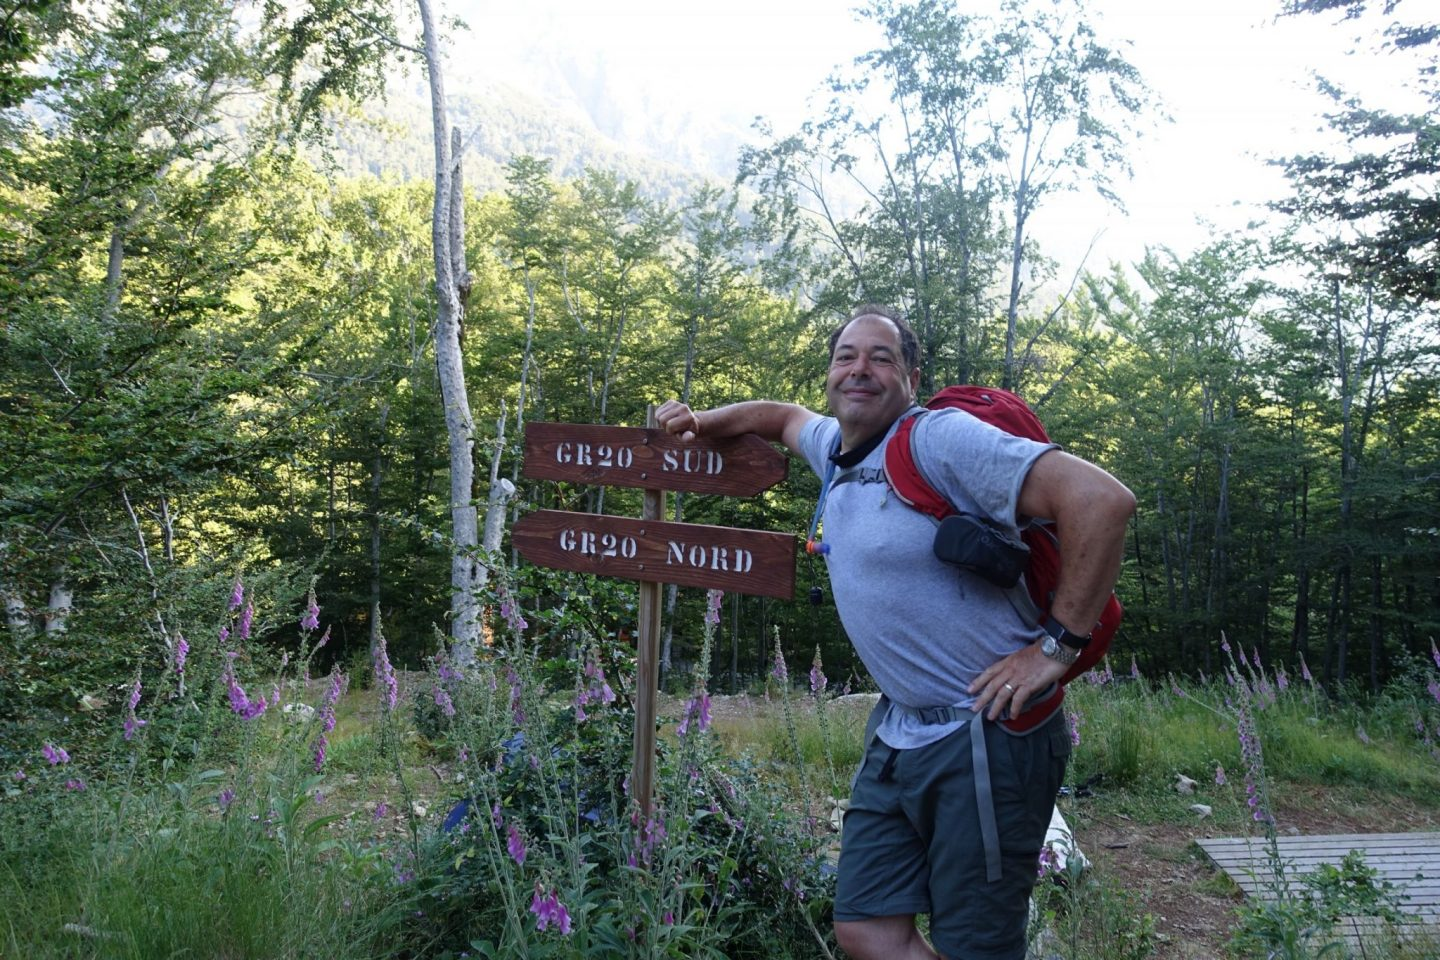 Halfway point on the GR20: main smiling and leaning against a wooden sign pointing north and south